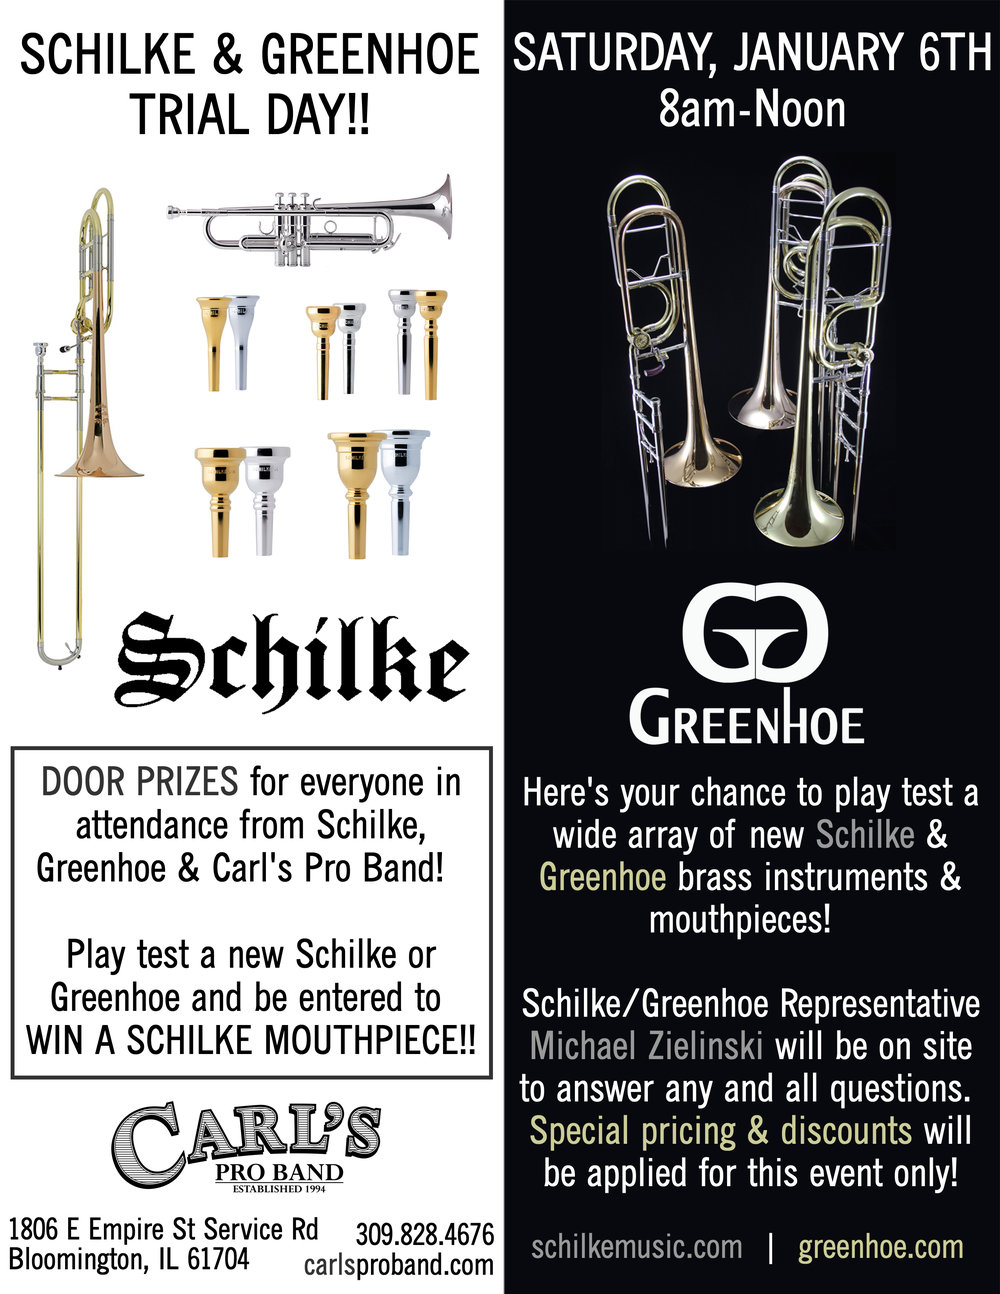 2017 Schilke Greenhoe Day Flyer.jpg